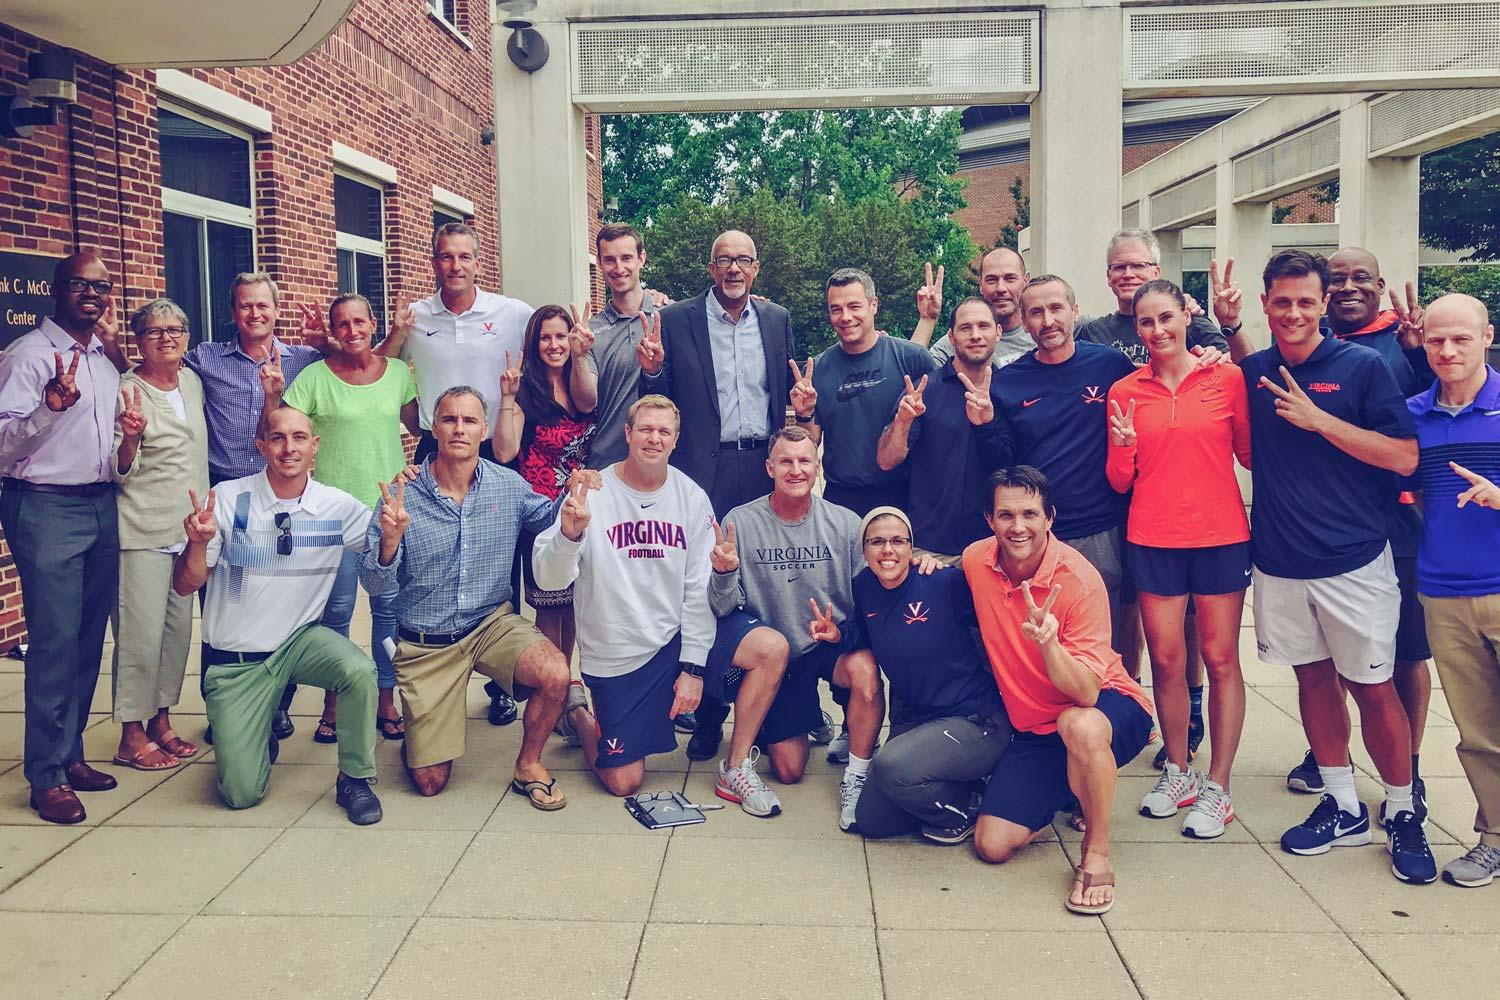 UVA coaches pose in support of unity and diversity